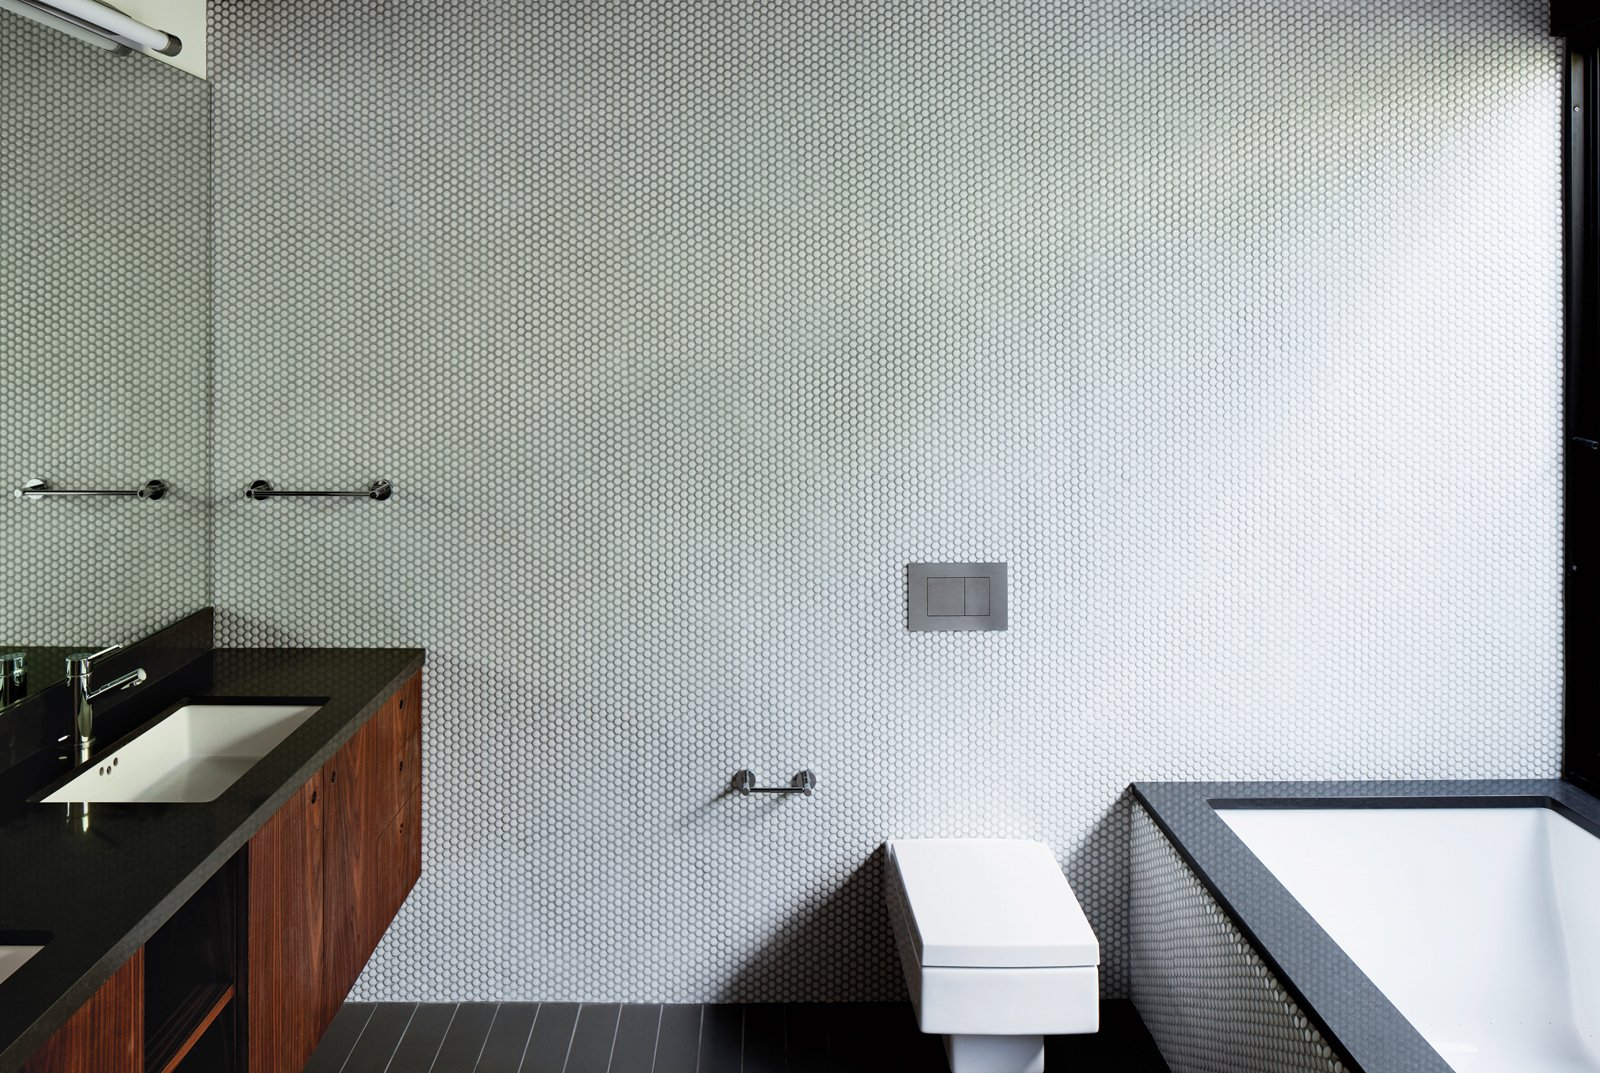 Photo 2 of 2 in A Minimalist Bathroom in Los Angeles - Dwell